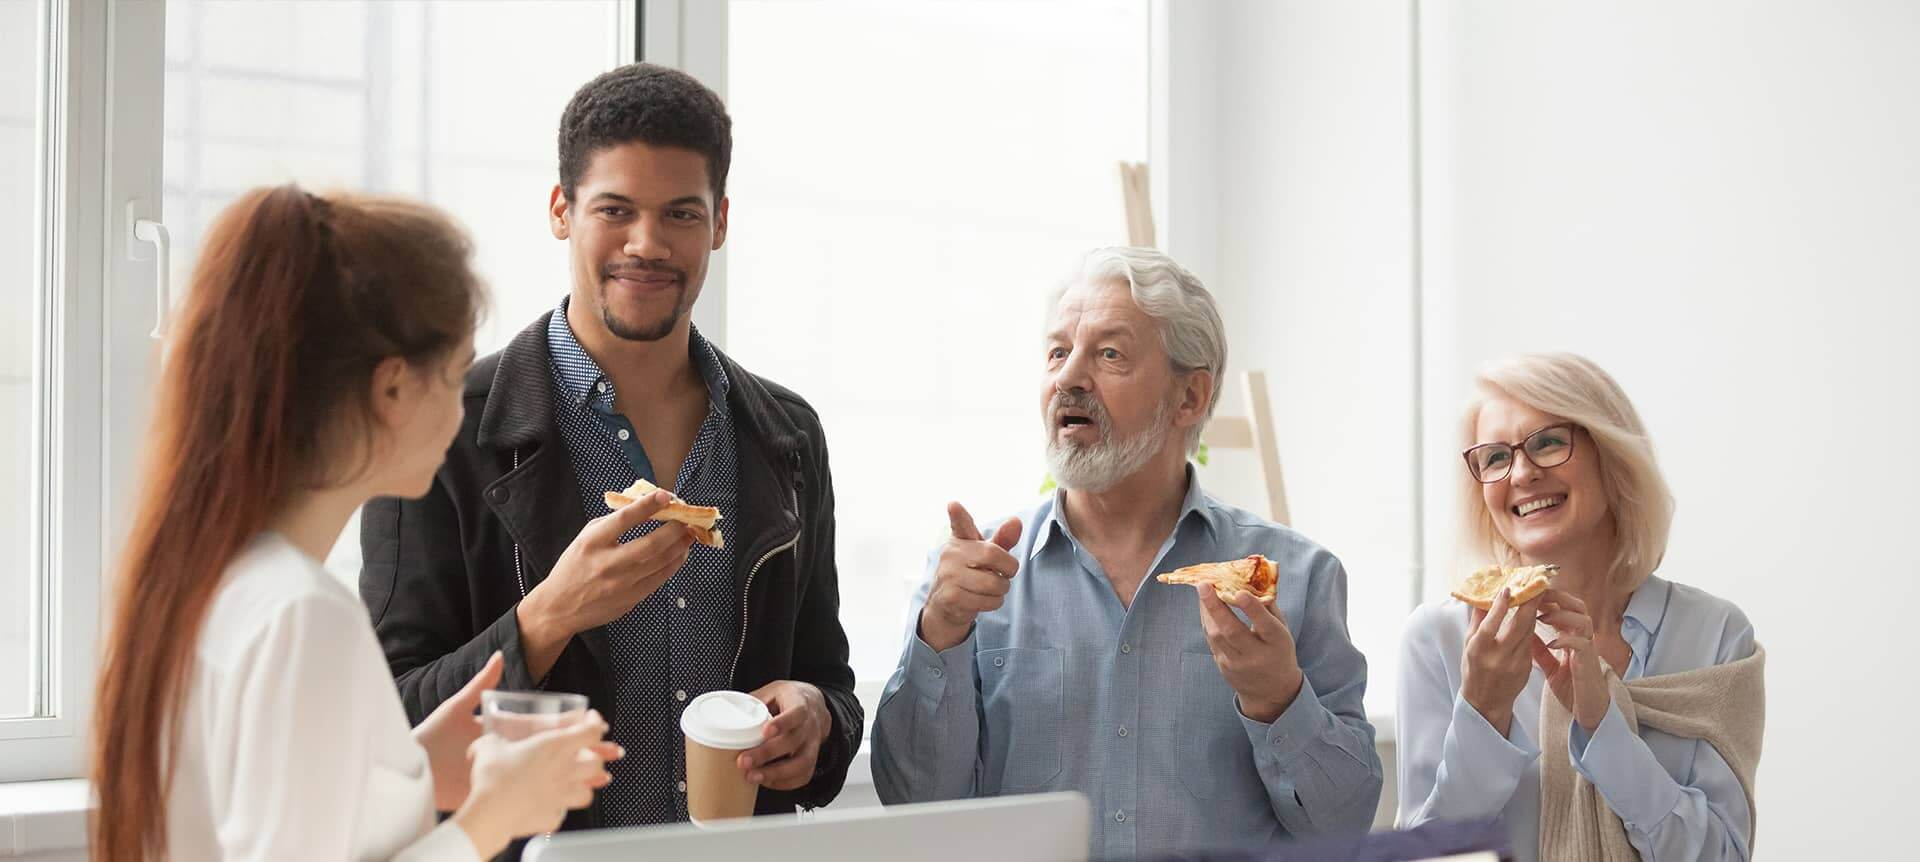 A group of employees having pizza at the office